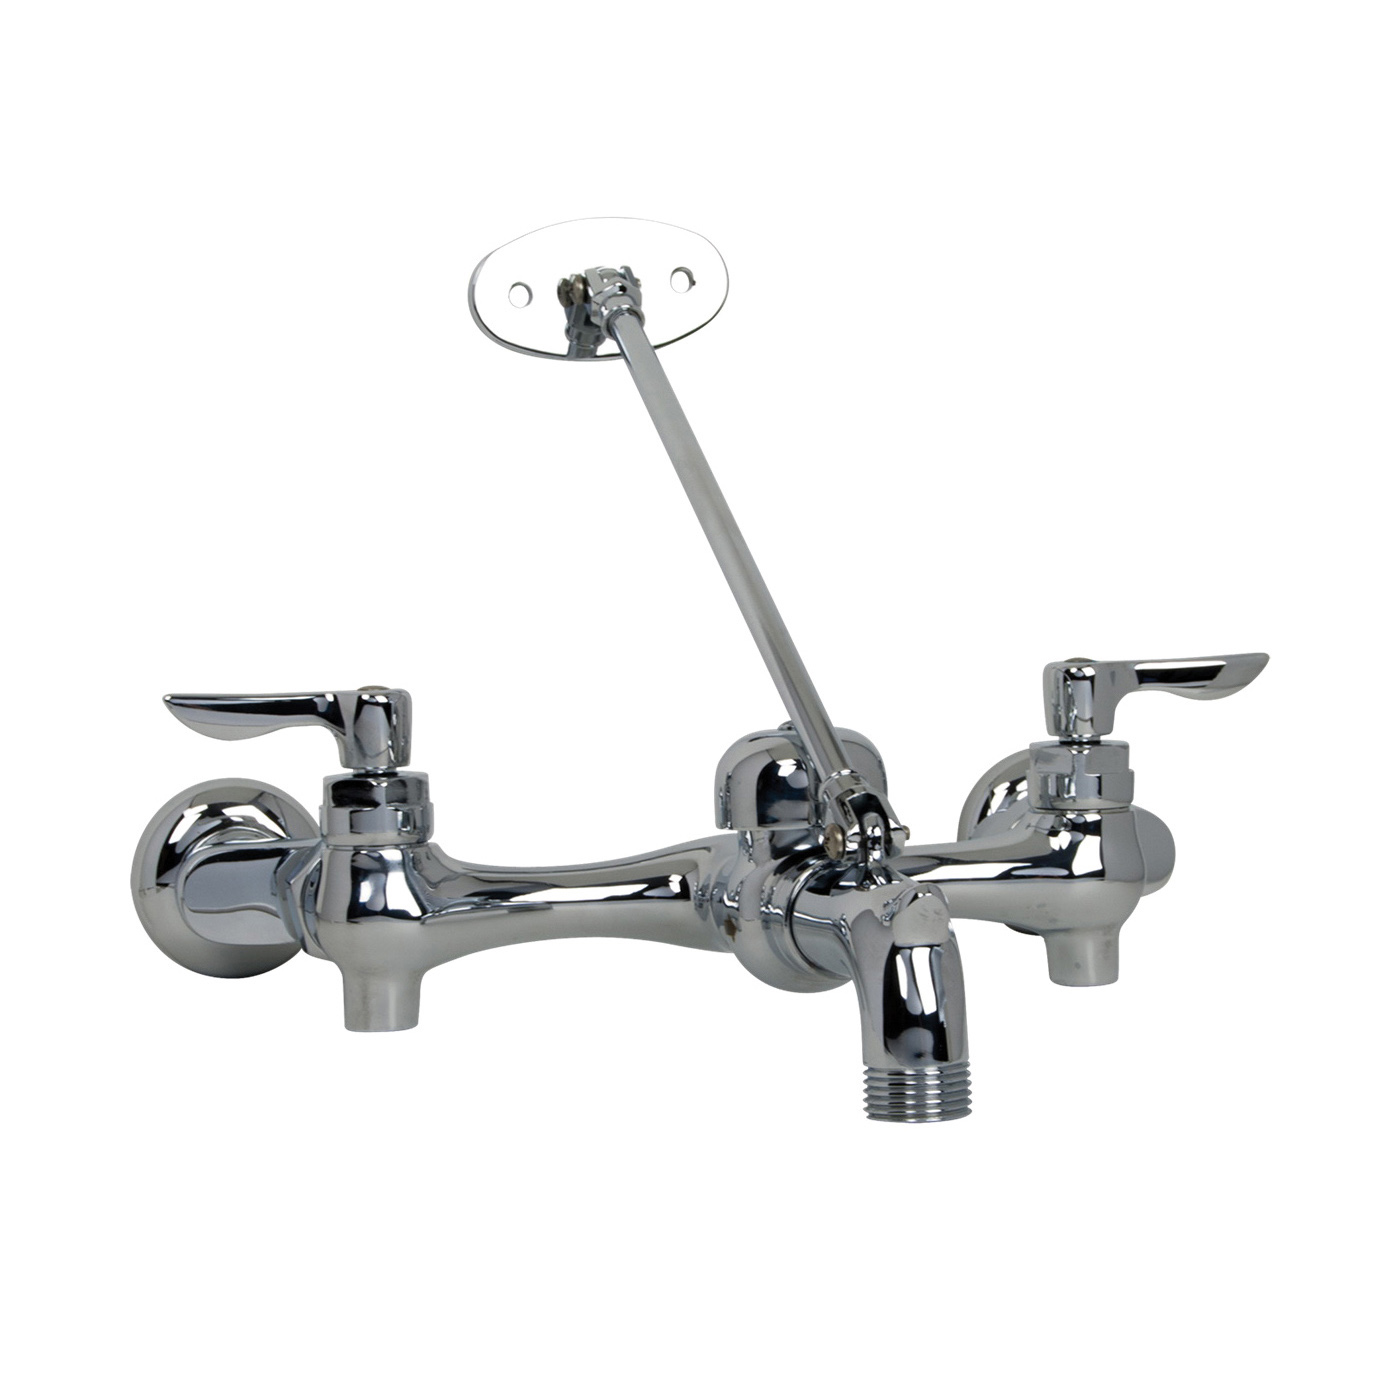 American Standard 8354.112.002 Exposed Yoke Utility Faucet With Offset Shanks, Wall Mount, 2 Handles, 6 to 10 in Center, 2.2 gpm Flow Rate, Polished Chrome